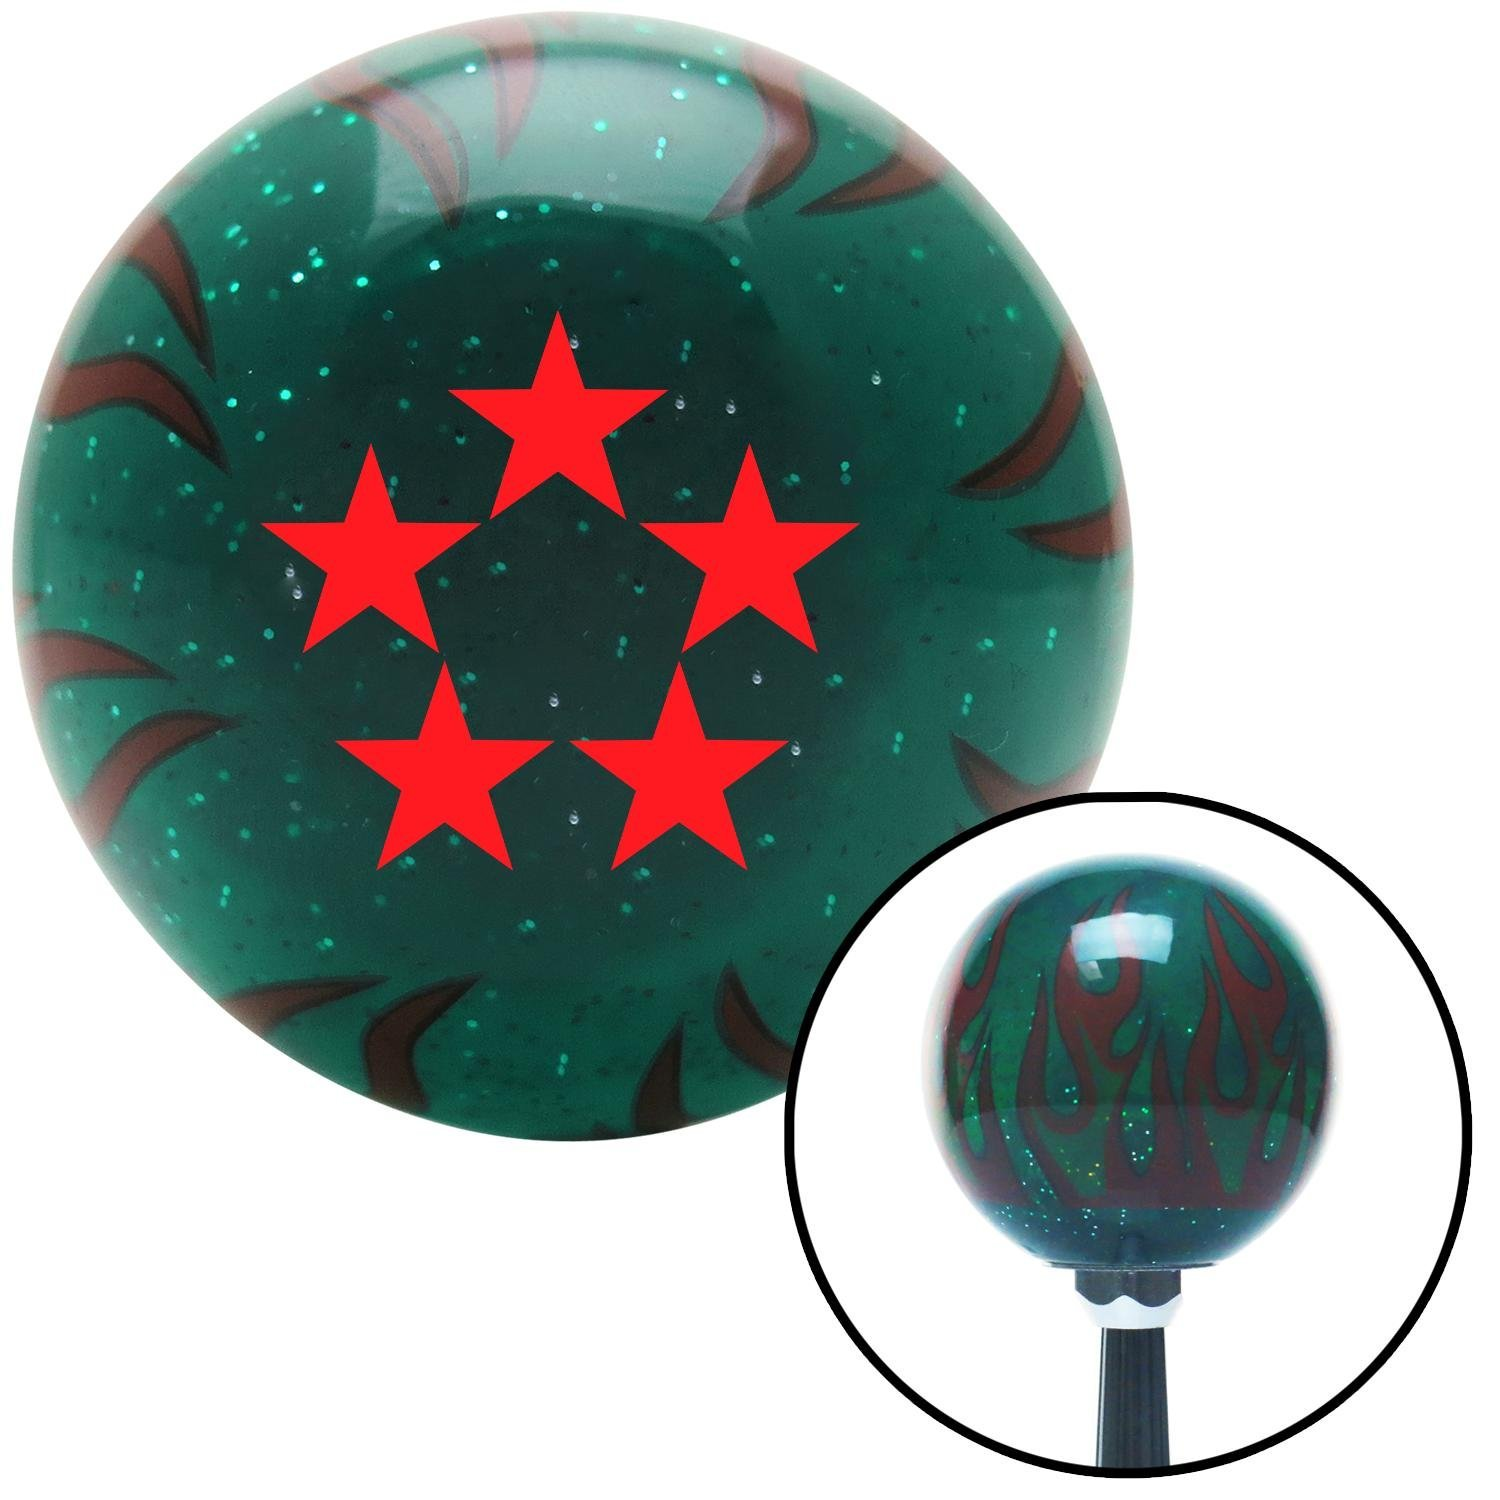 Red Fleet Admiral American Shifter 266226 Green Flame Metal Flake Shift Knob with M16 x 1.5 Insert